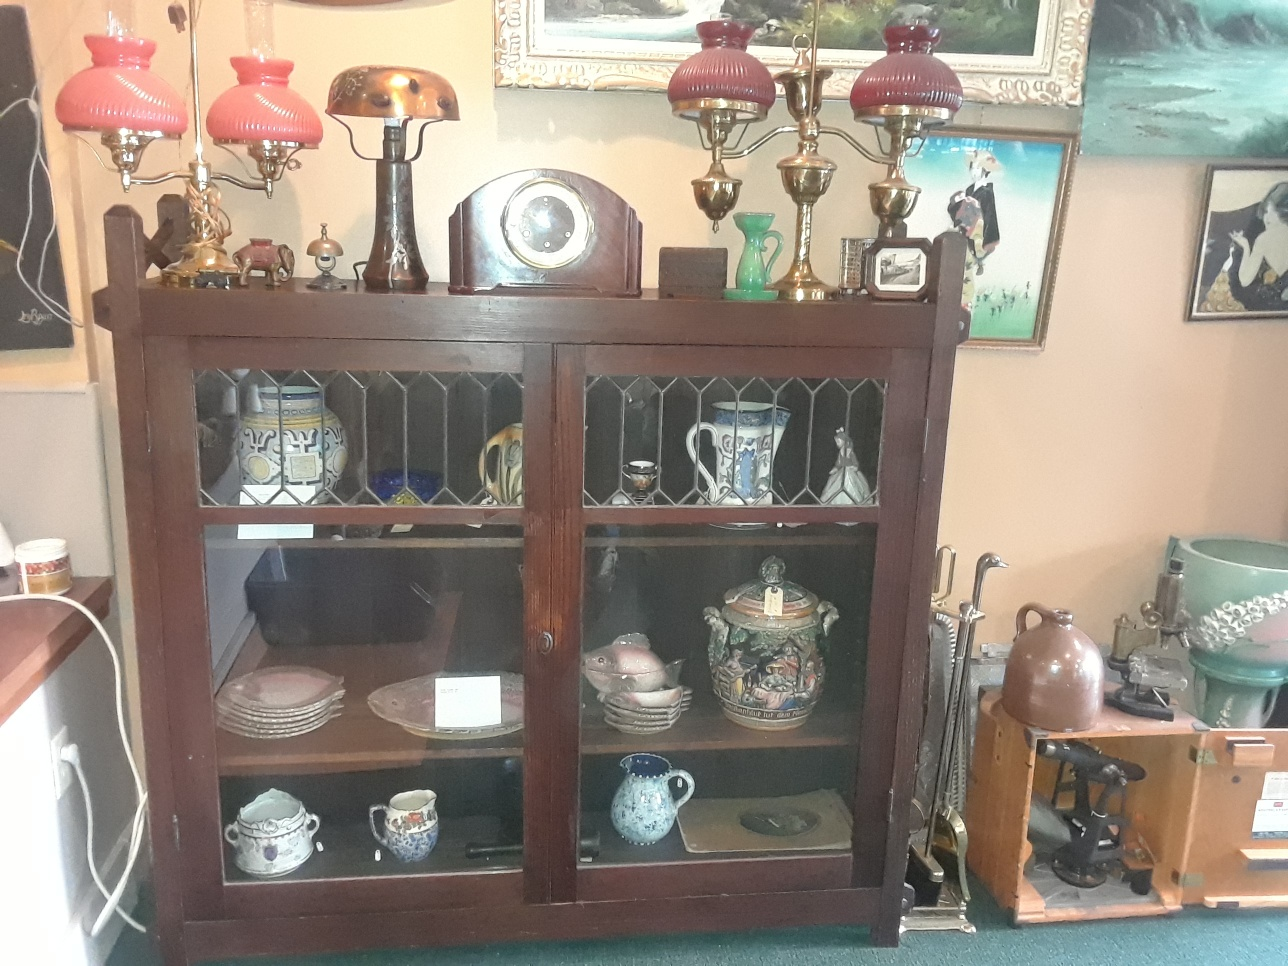 ... antique furniture and jewelry for every taste. We also take inventory  from estate sales and estate liquidation. Look below for some photos of the  shop ... - Antiques, Vintage Furniture, Antique Jewelry Buffalo, NY Side By